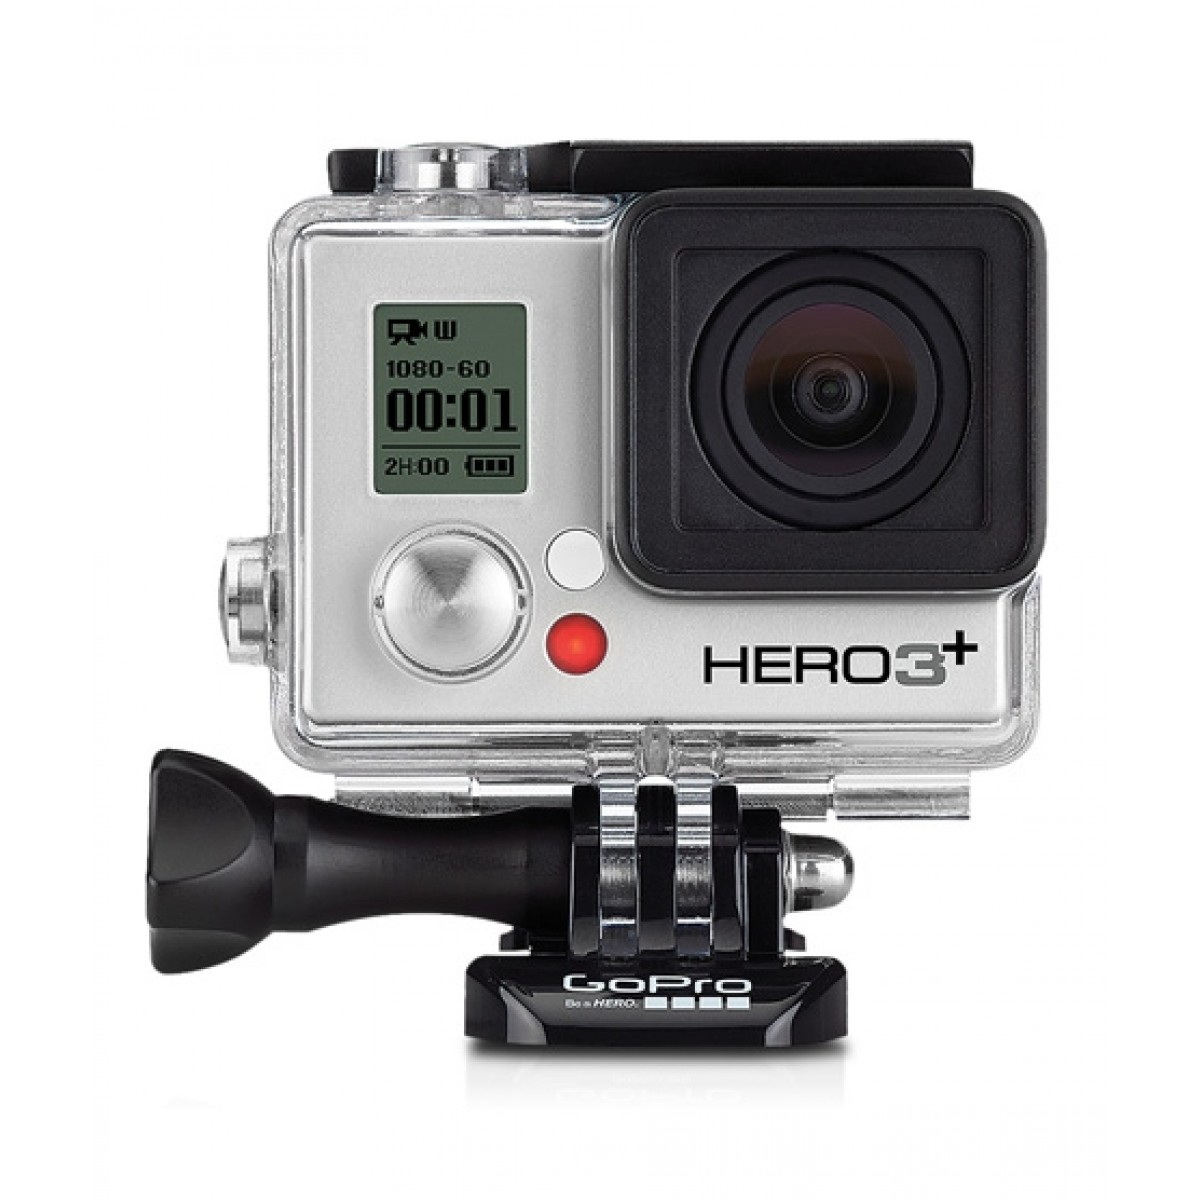 GOPRO HERO3+ SILVER EDITION CAMERA DRIVER DOWNLOAD